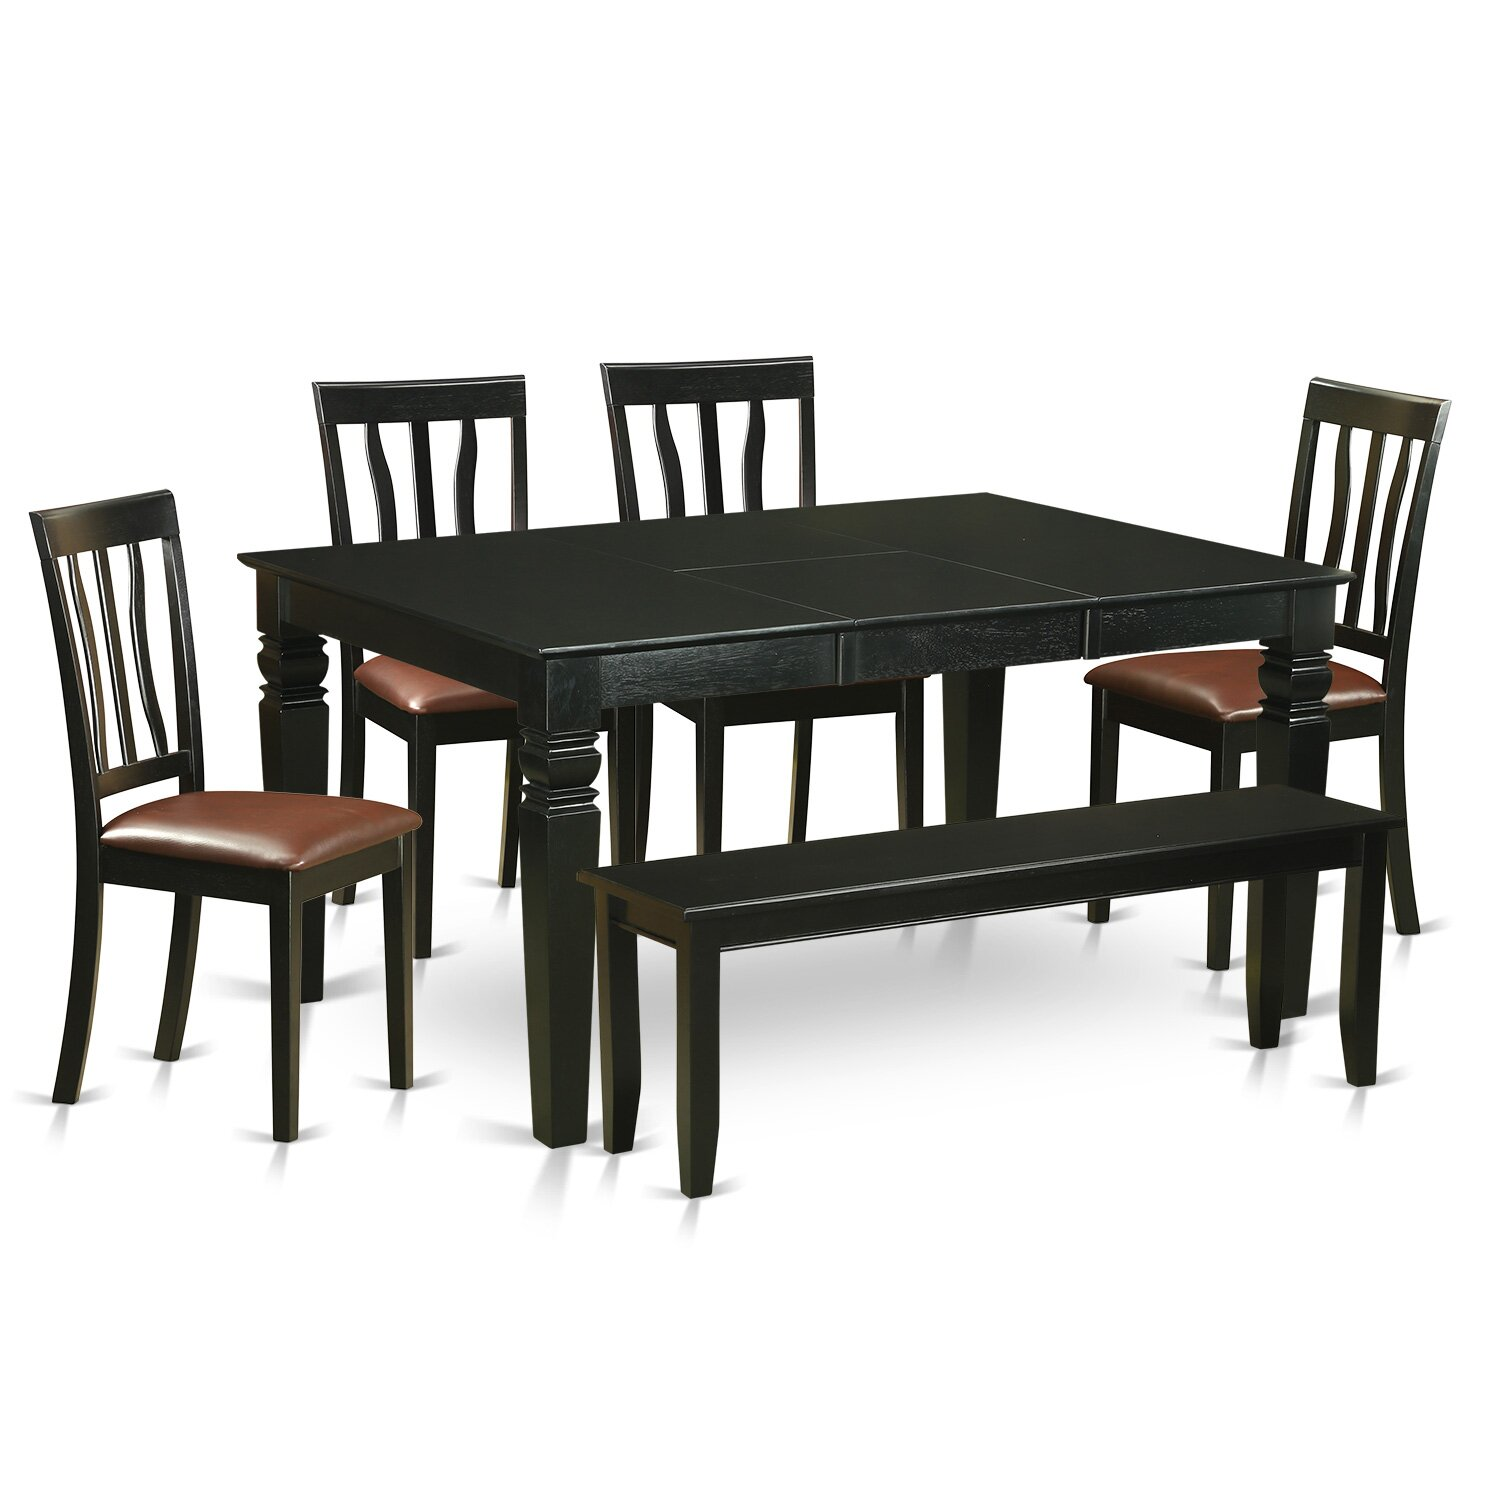 Wooden importers weston 6 piece dining set wayfair for Dining room table and bench